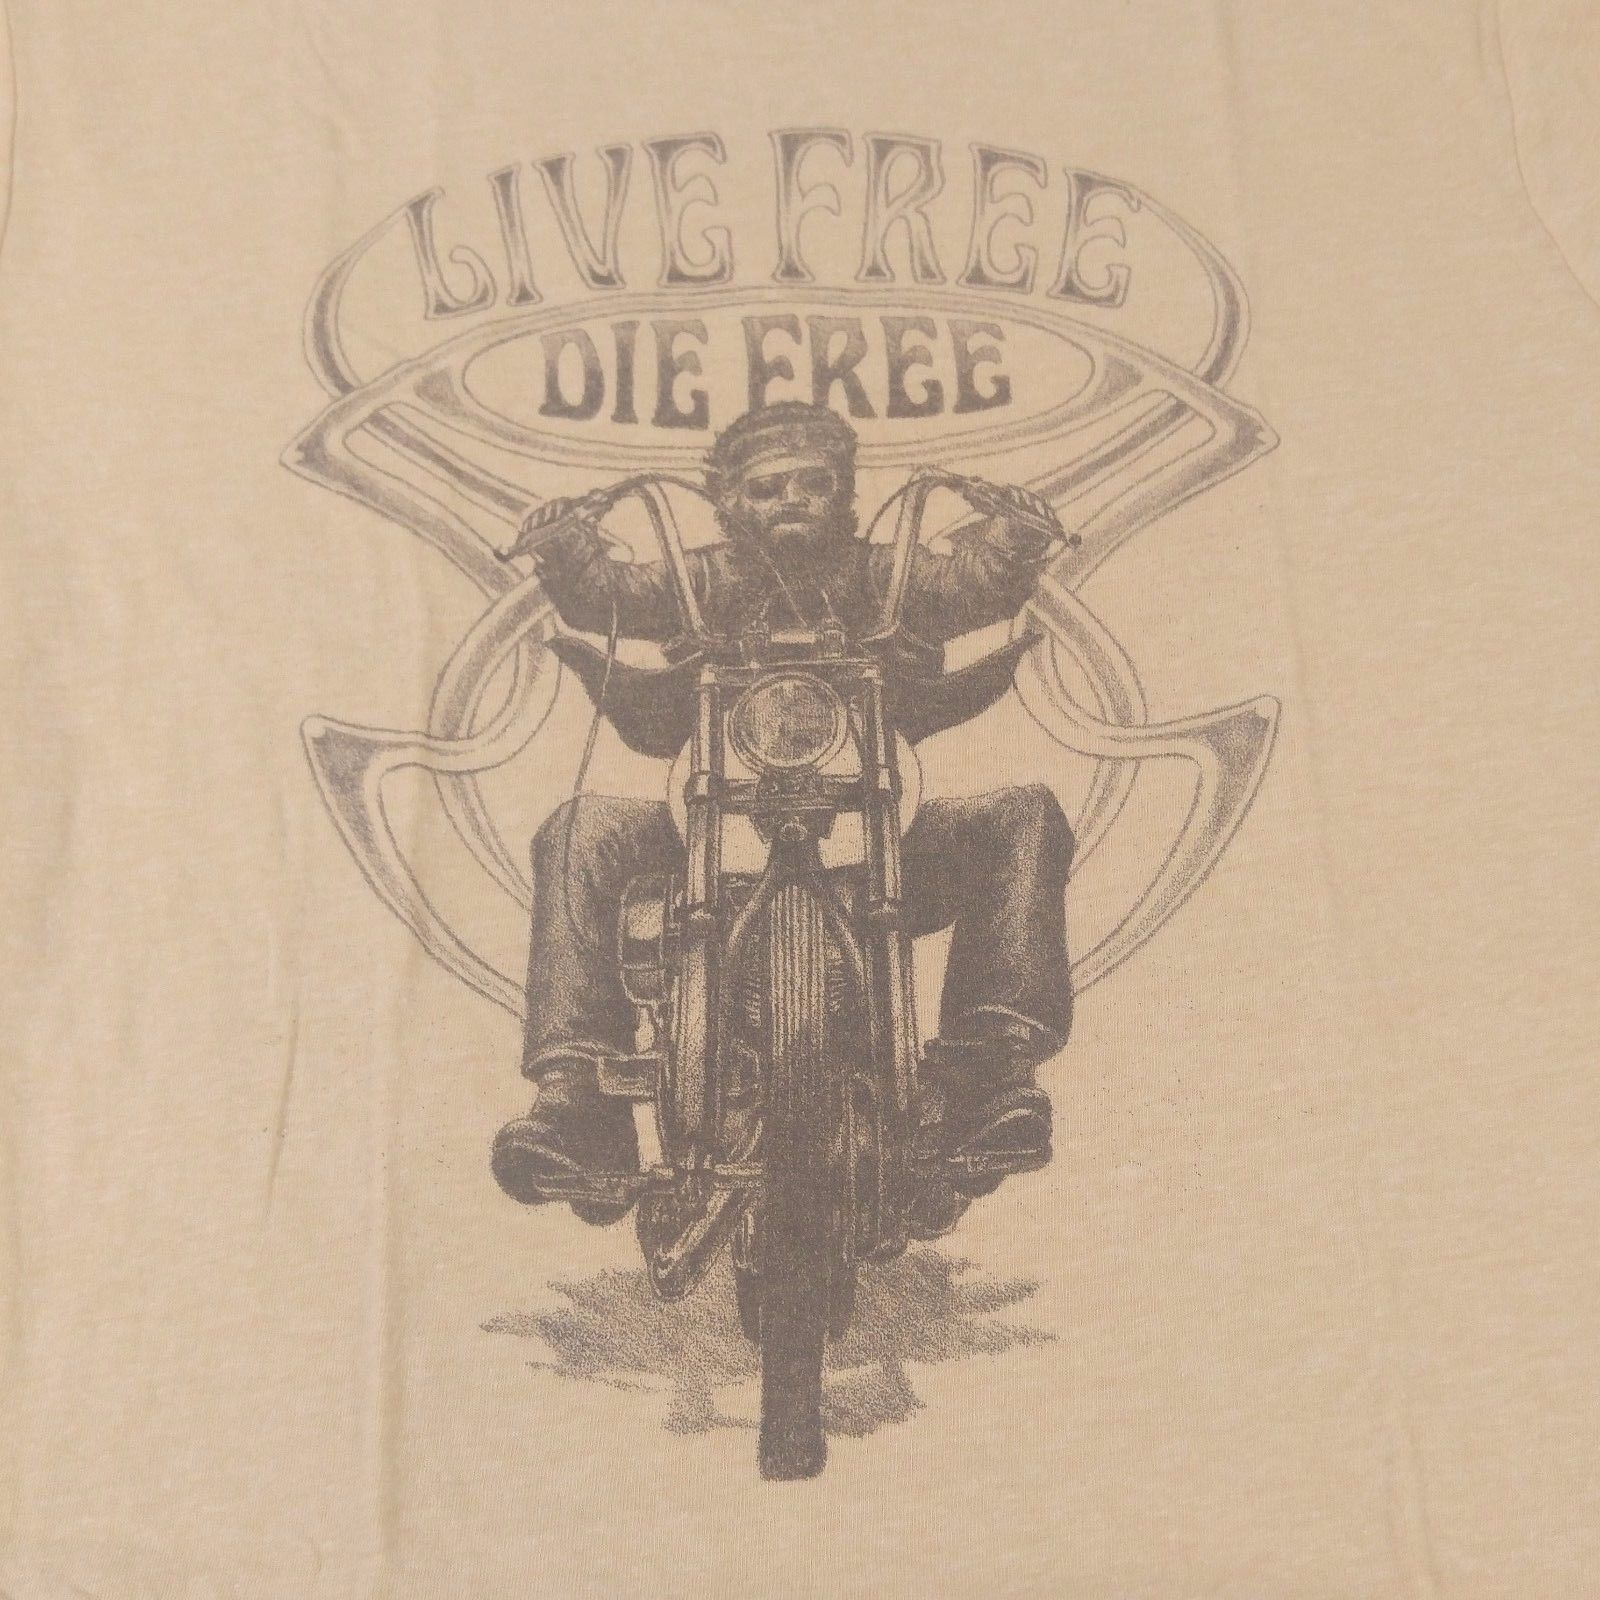 """NEW Lucky Brand T-Shirt Men's Short Sleeve """"Live Free Die Free"""" Size M  - $12.16"""